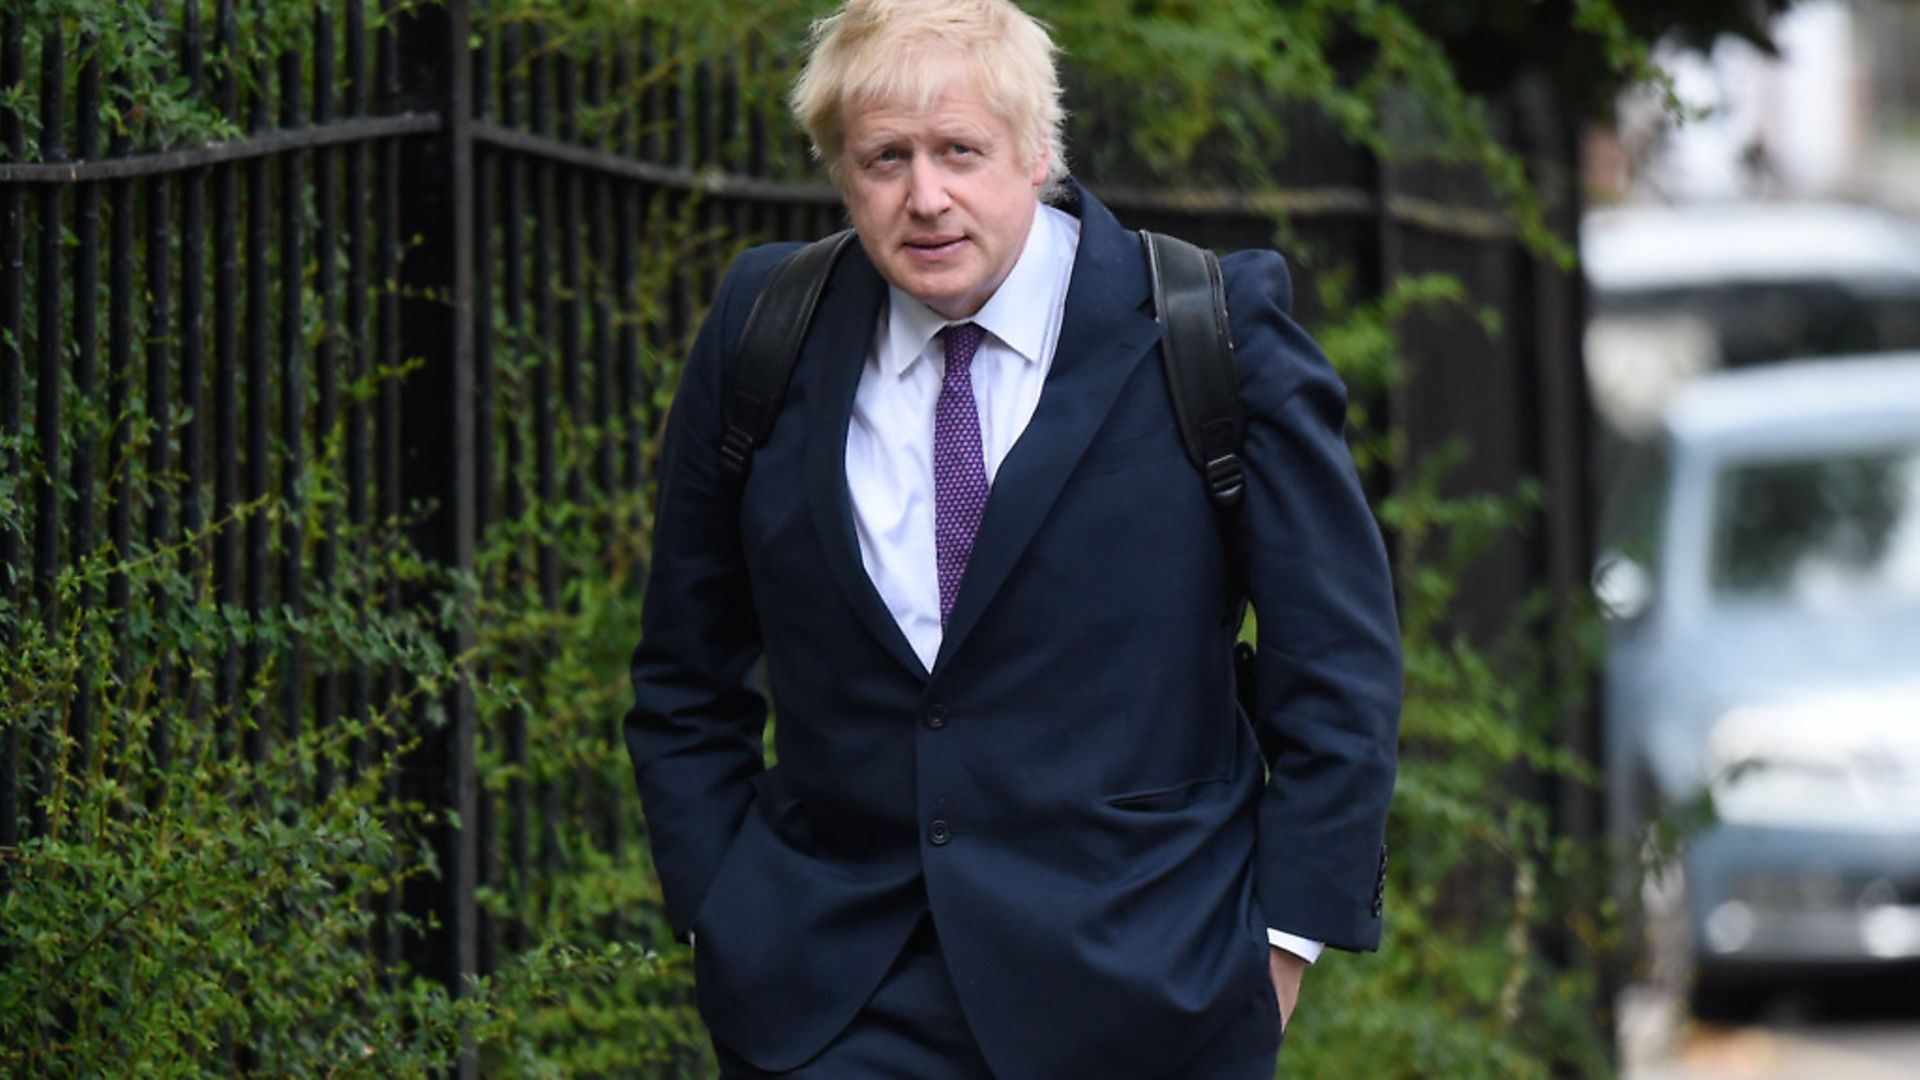 Boris Johnson. (Photo by Peter Summers/Getty Images) - Credit: Getty Images